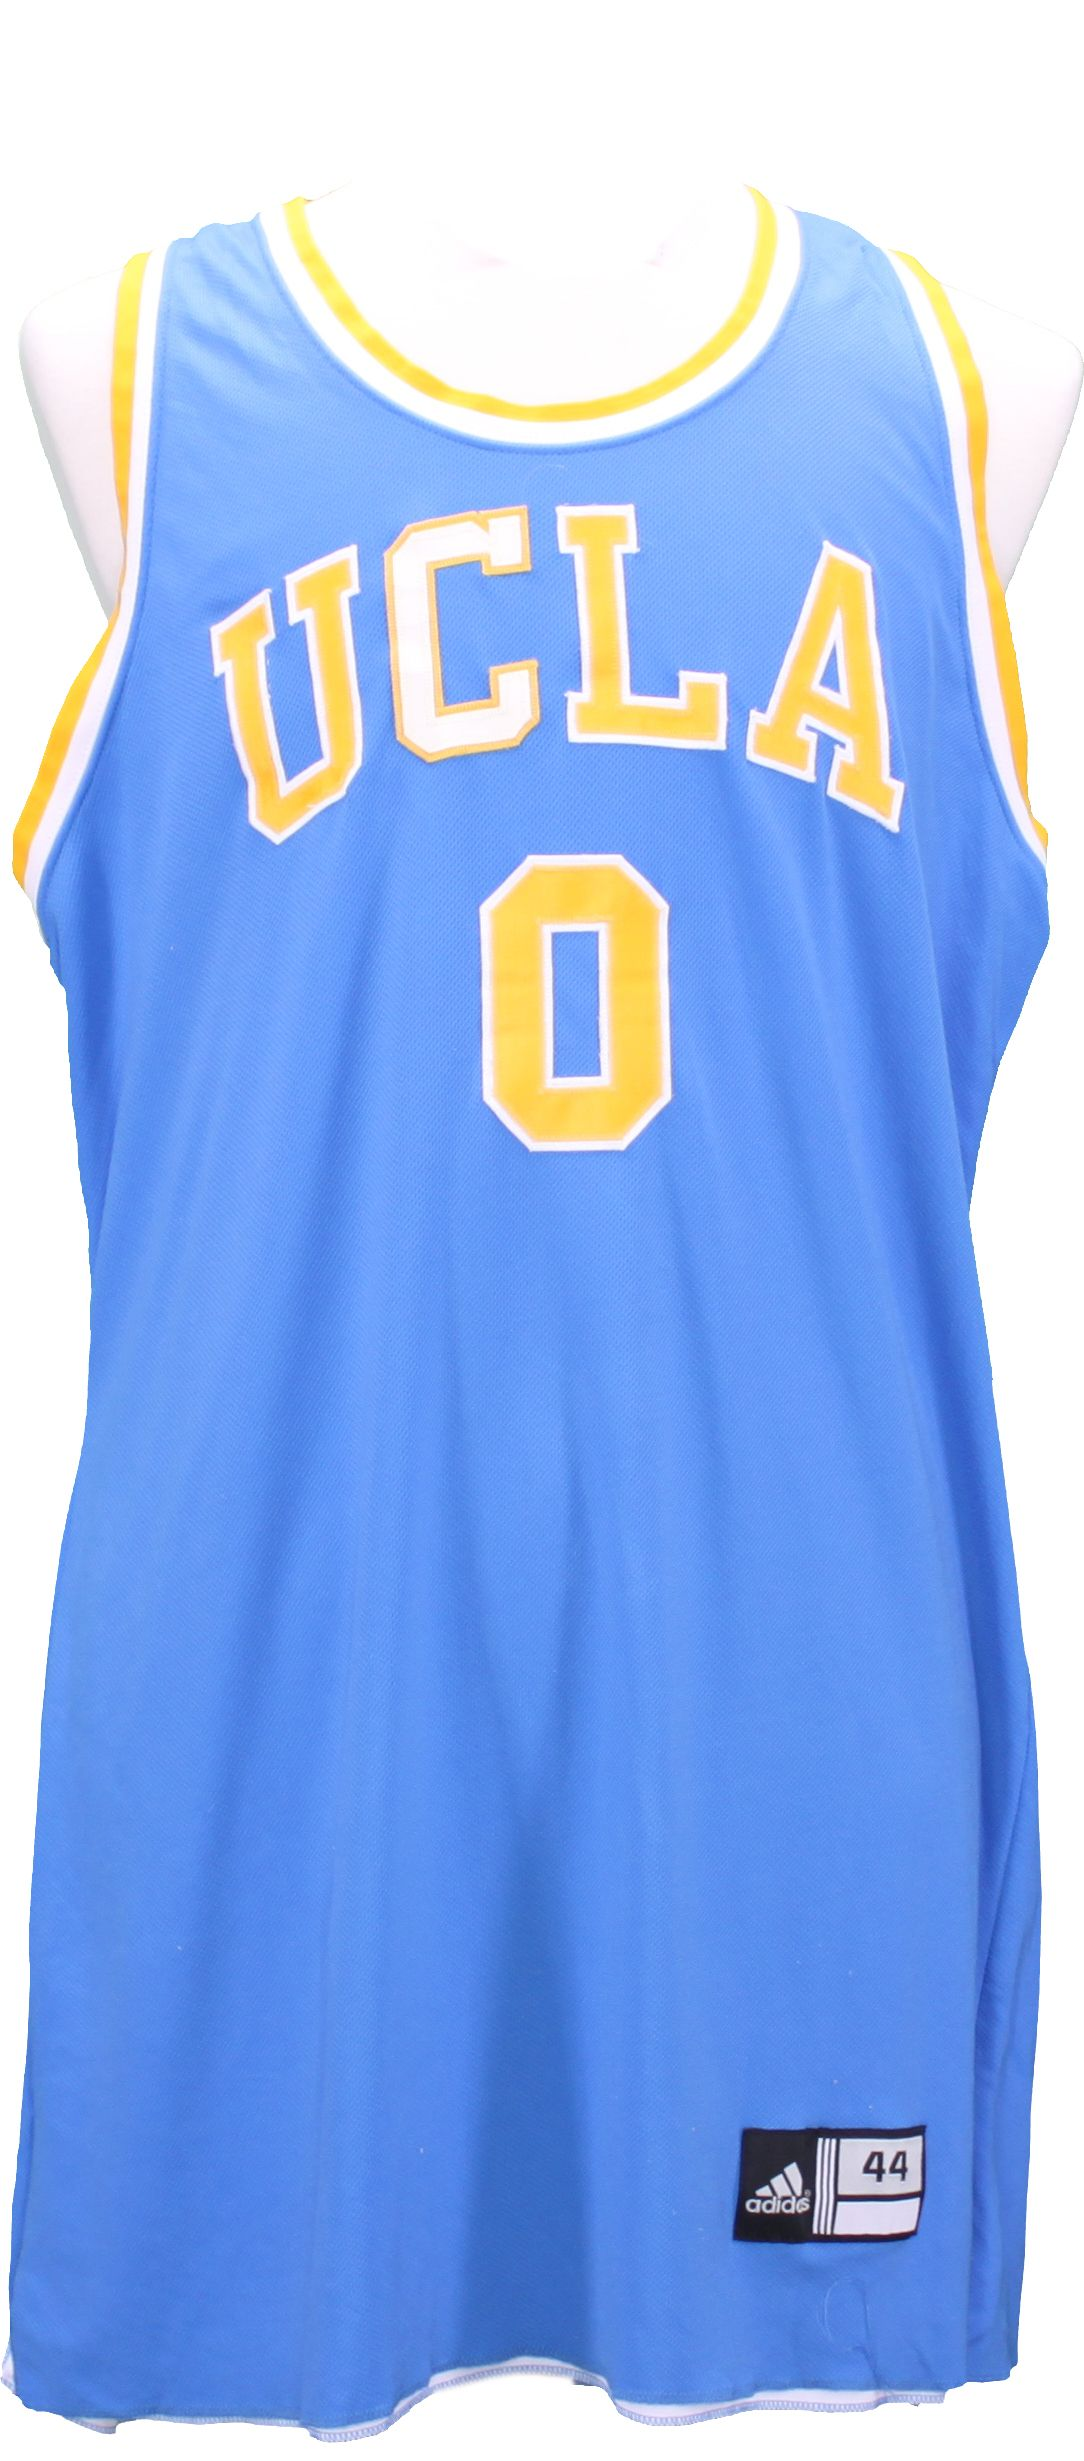 cheap for discount c8a66 c7f94 shop russell westbrook signed jersey 151d3 783cb